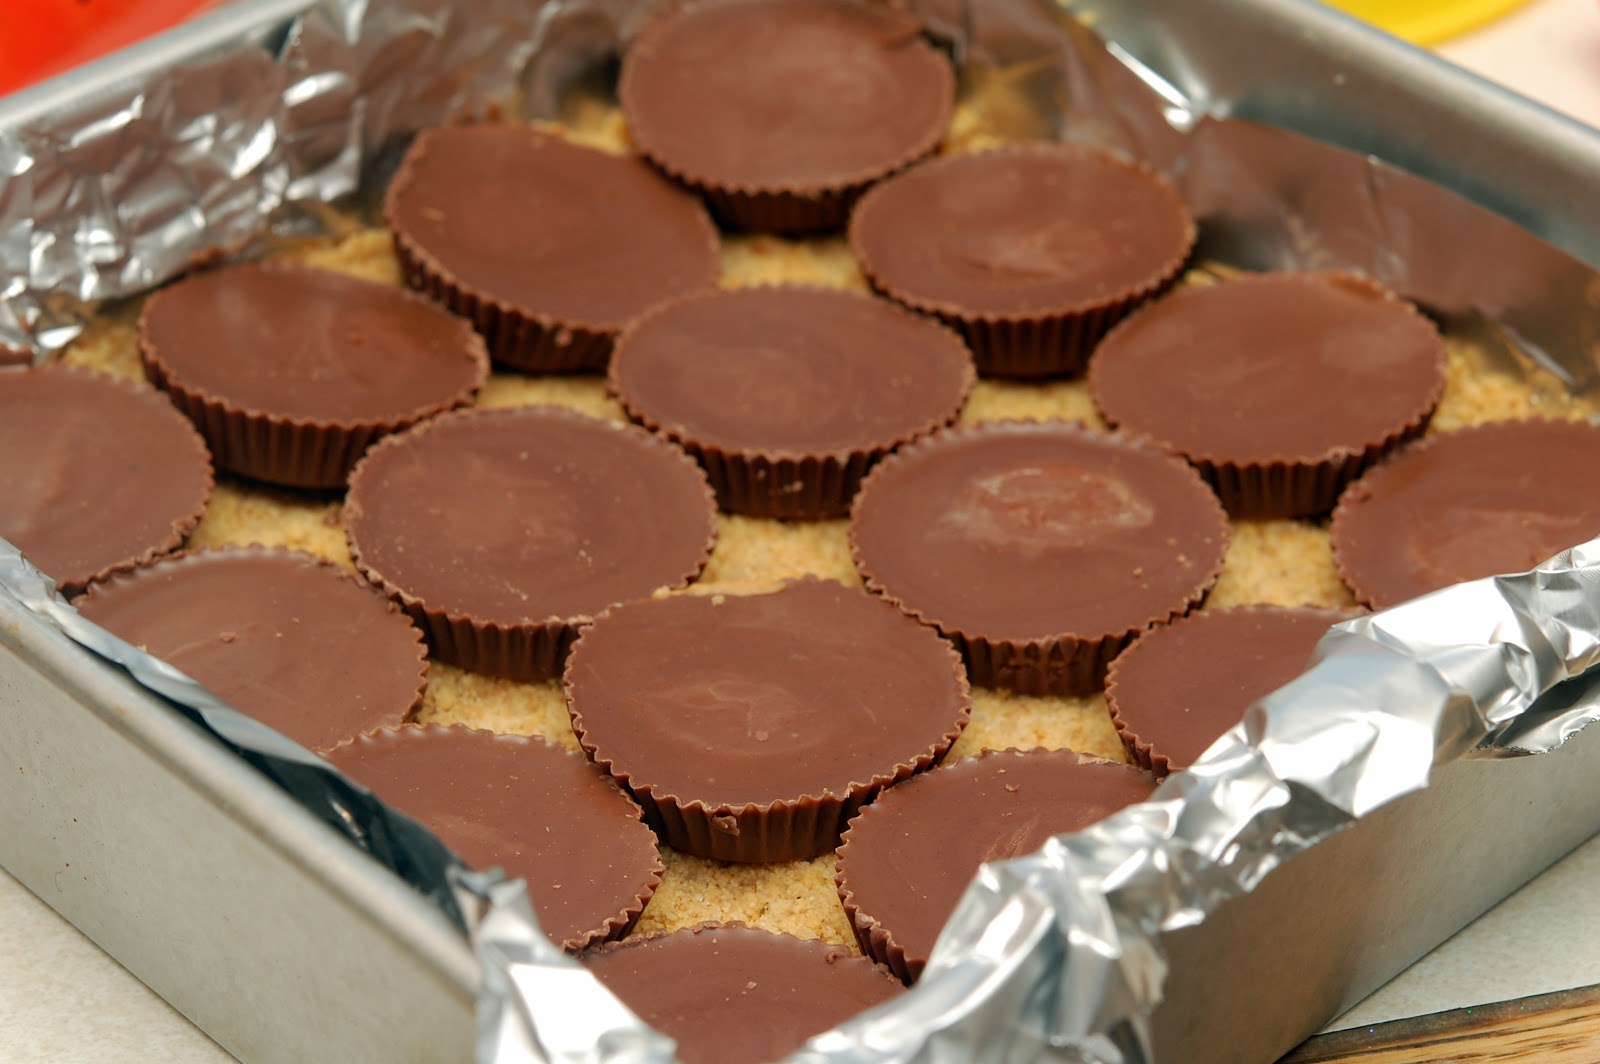 PEANUT BUTTER CHEESECAKE OVER PEANUT BUTTER CUPS SITTING ON A ...